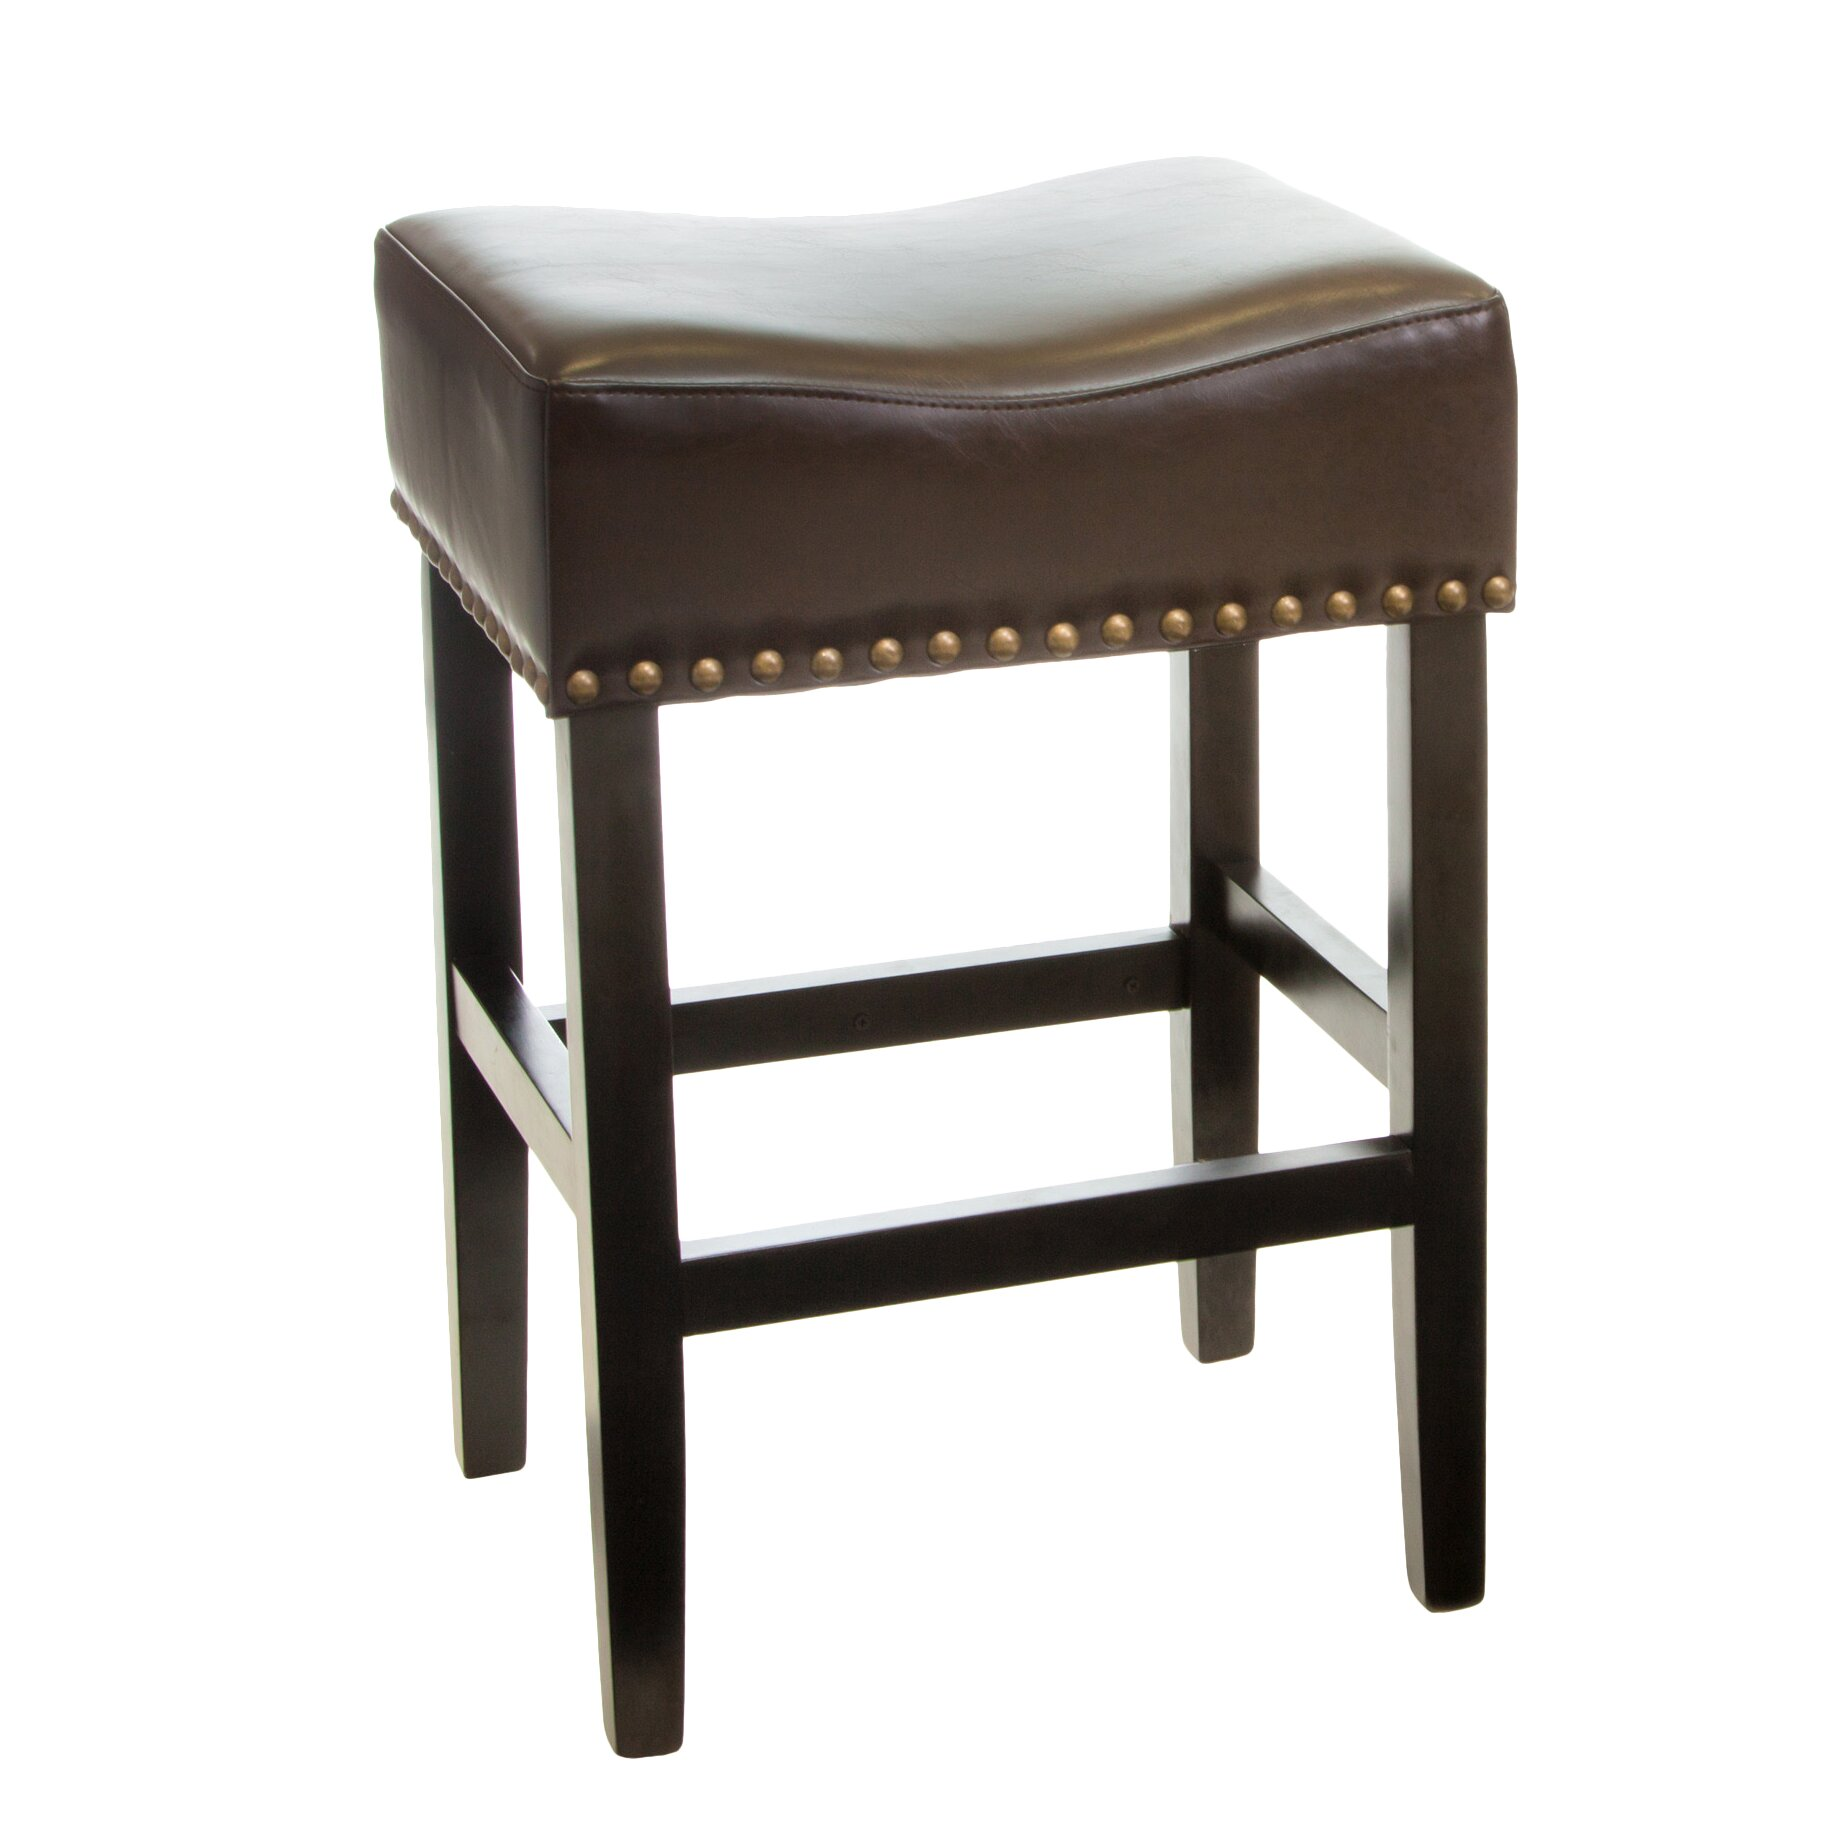 stress colored stool : Alcott Hill Reg Andersonville 26 Quot Download Image Stress Colored Stool